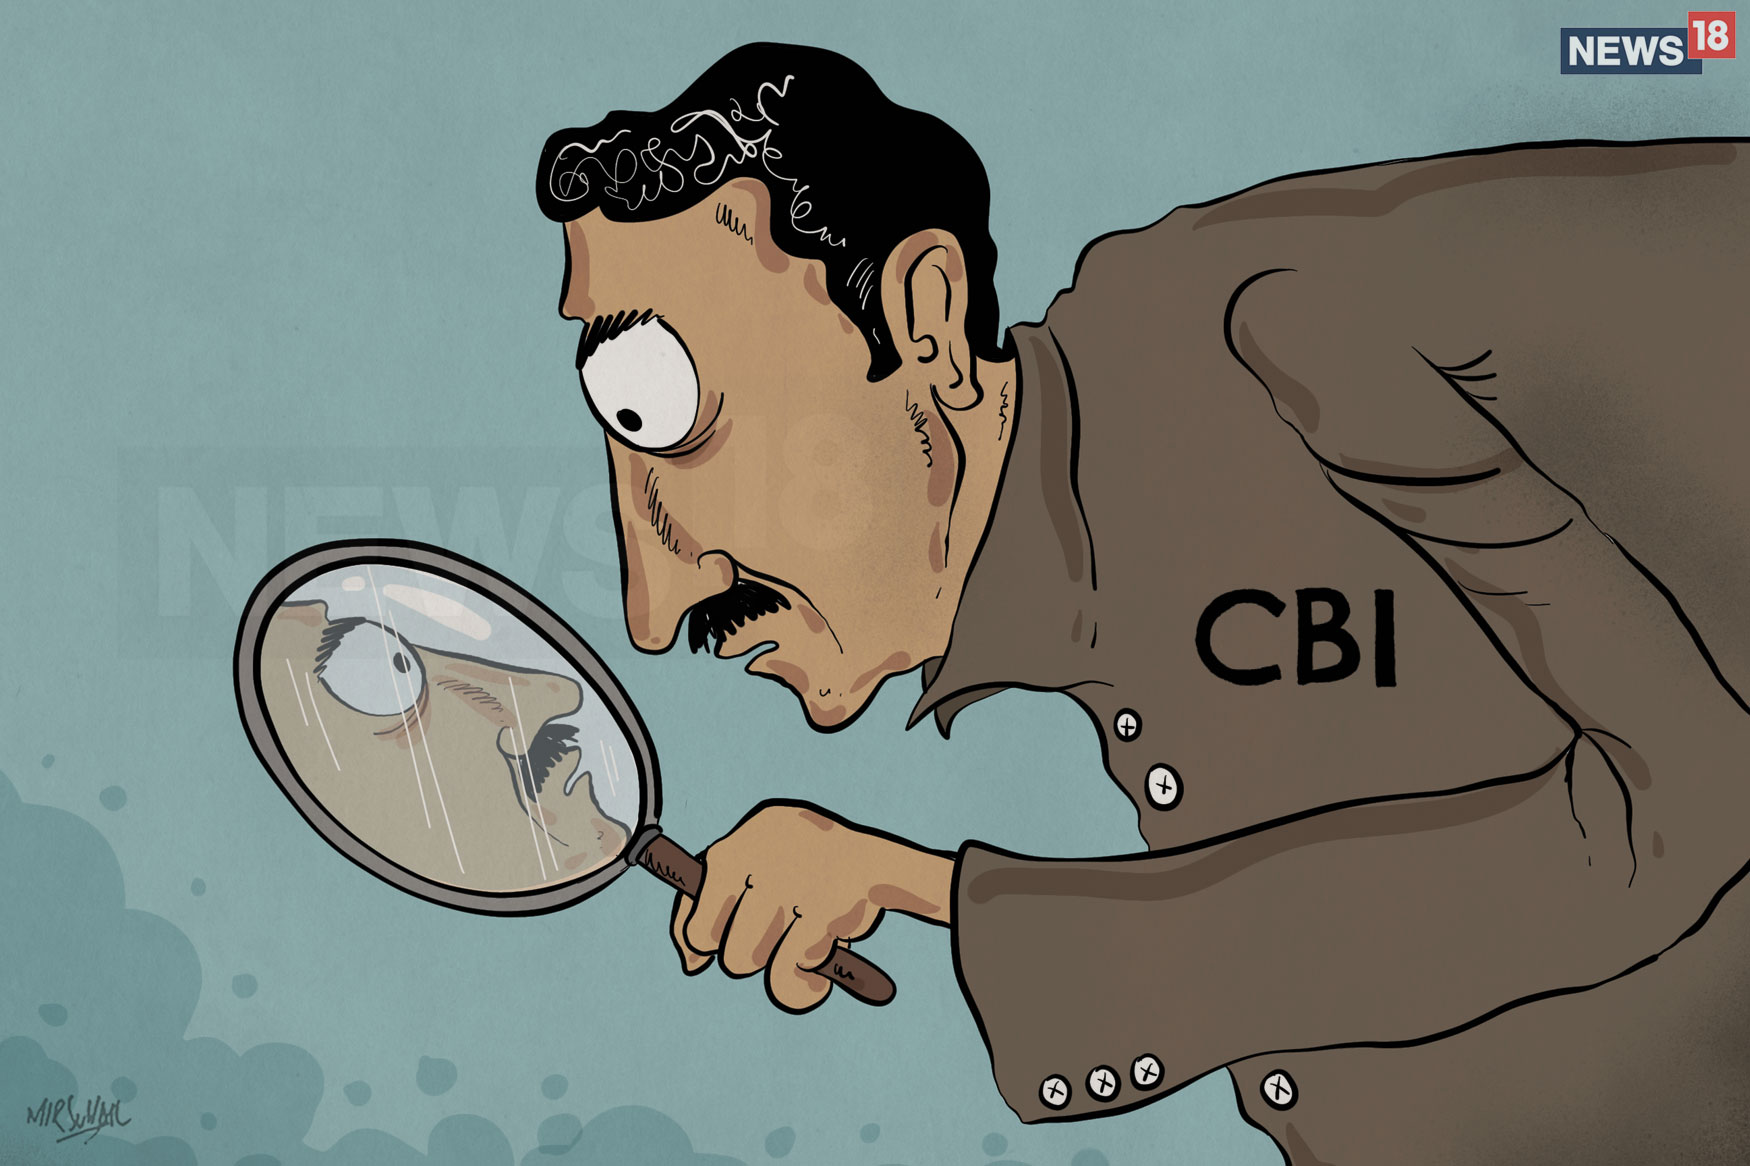 Another Telangana man to steer CBI in troubled times